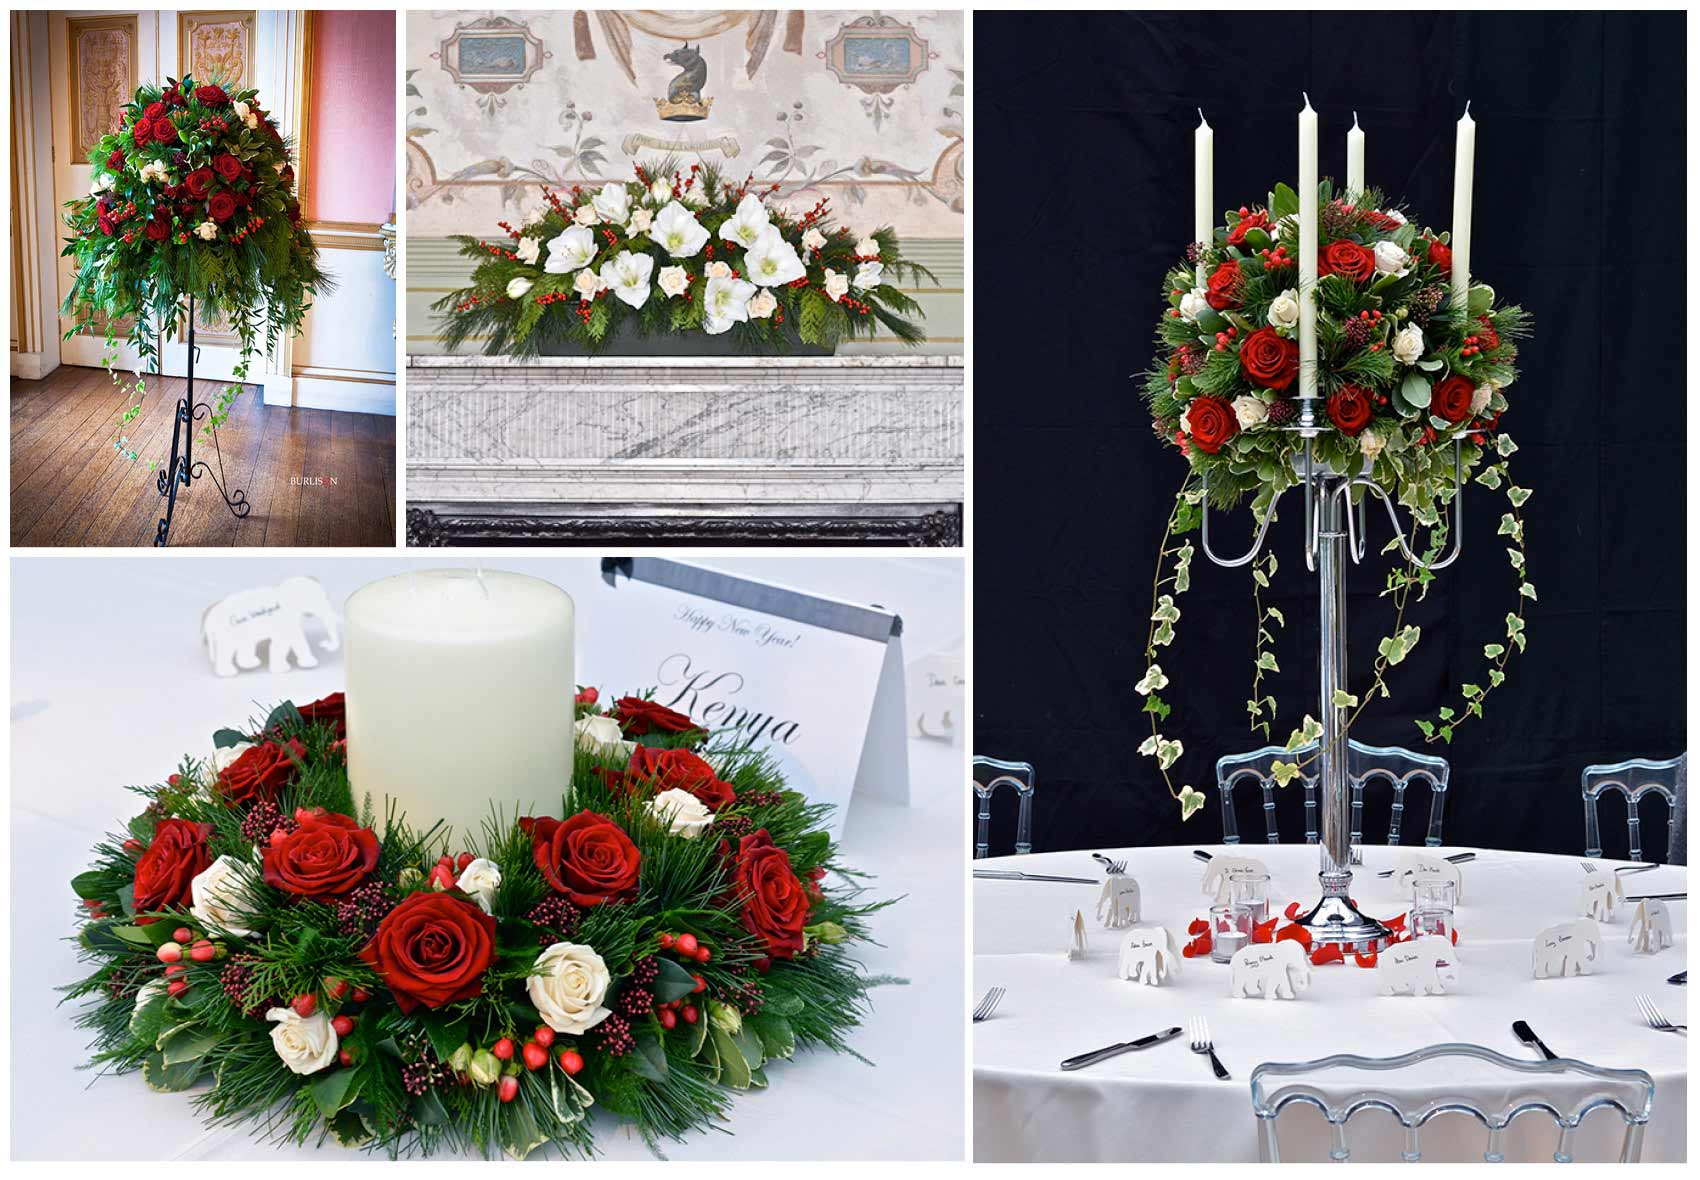 Fiori by lynne wedding flowers southampton venue flowers winter wedding flowers avington park winchester hampshire junglespirit Images